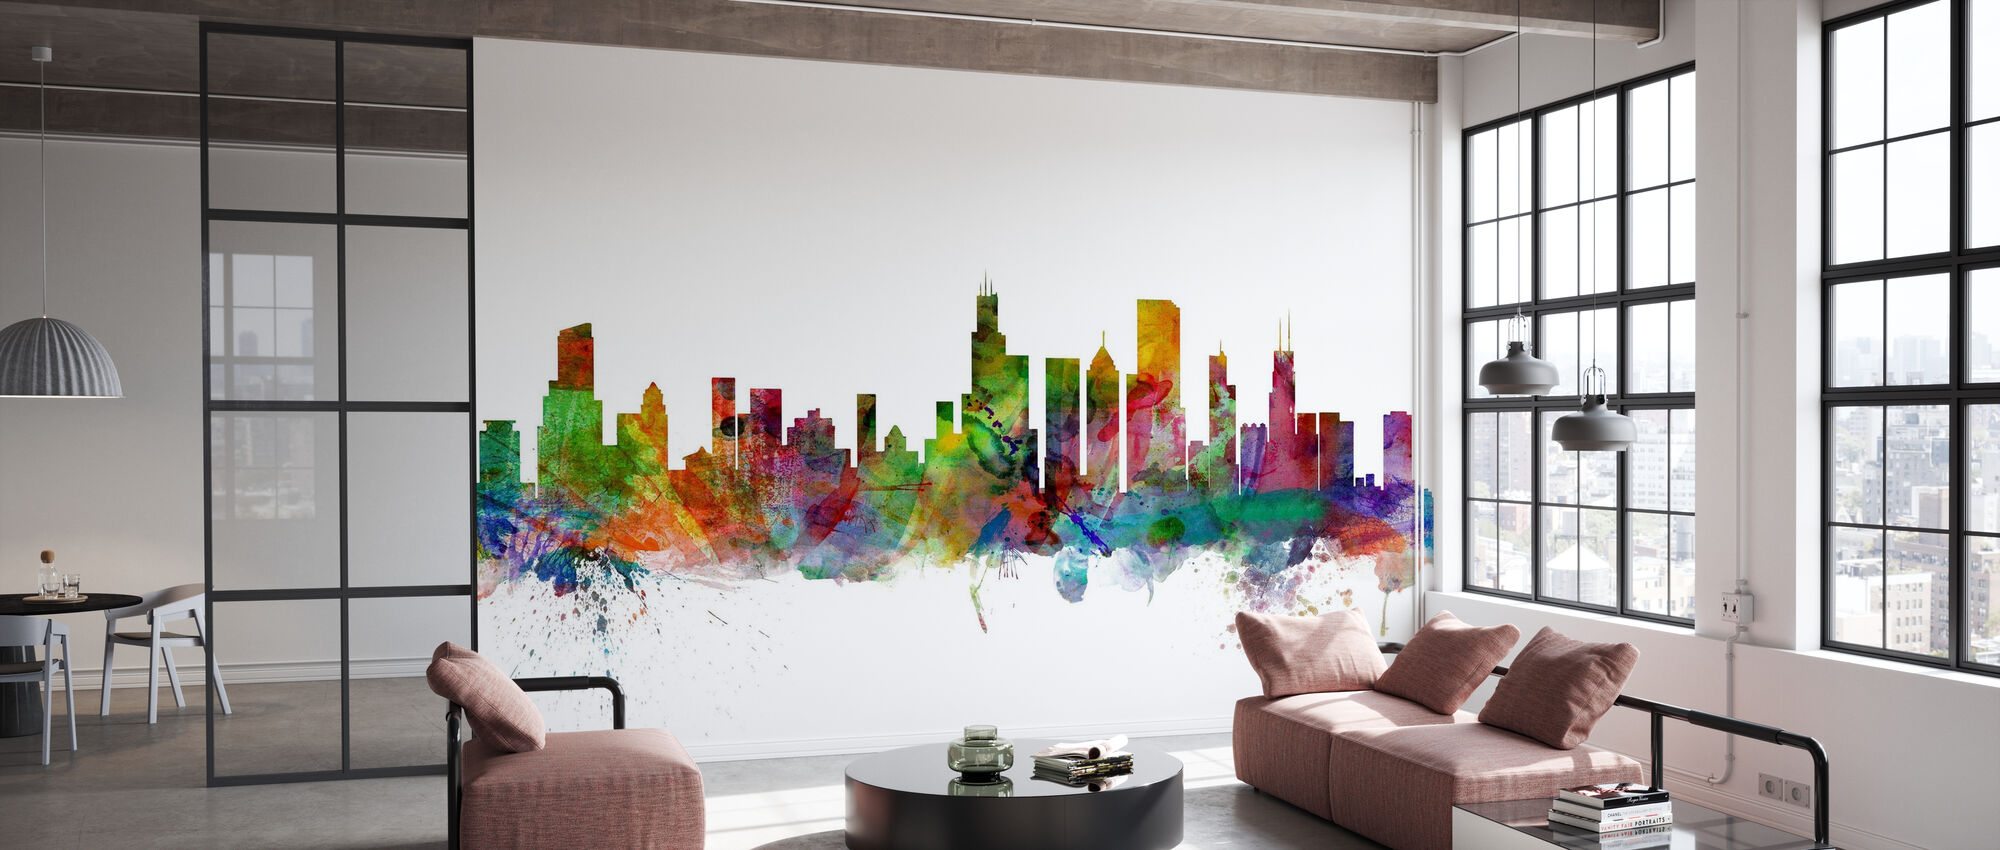 Chicago Skyline - Wallpaper - Office